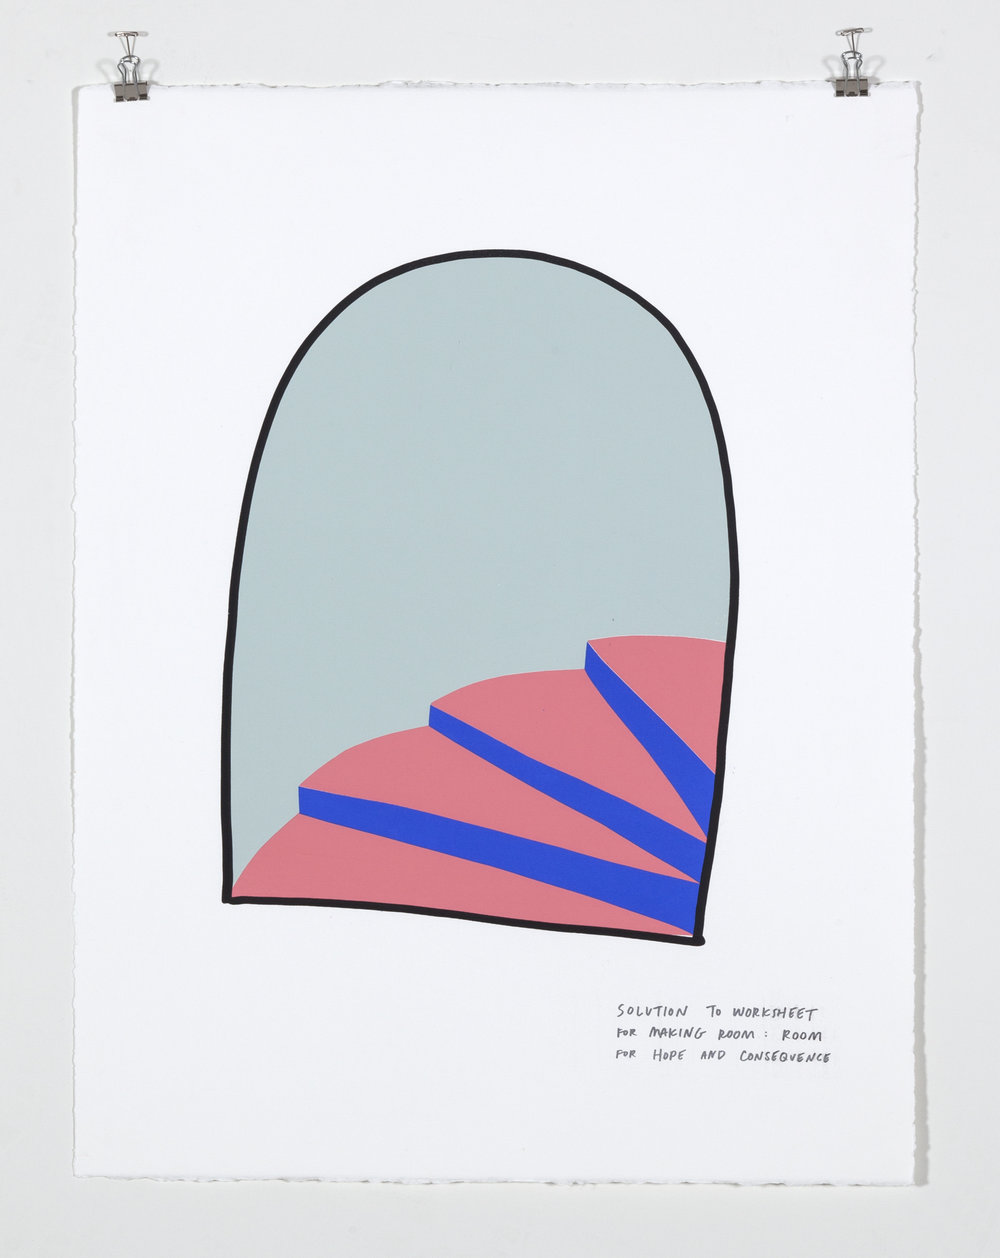 Solution to Worksheet for Making Room: Room of Hope and Consequence,  2018  Five color silkscreen print on paper 19 7/8 x 25 7/8 inches